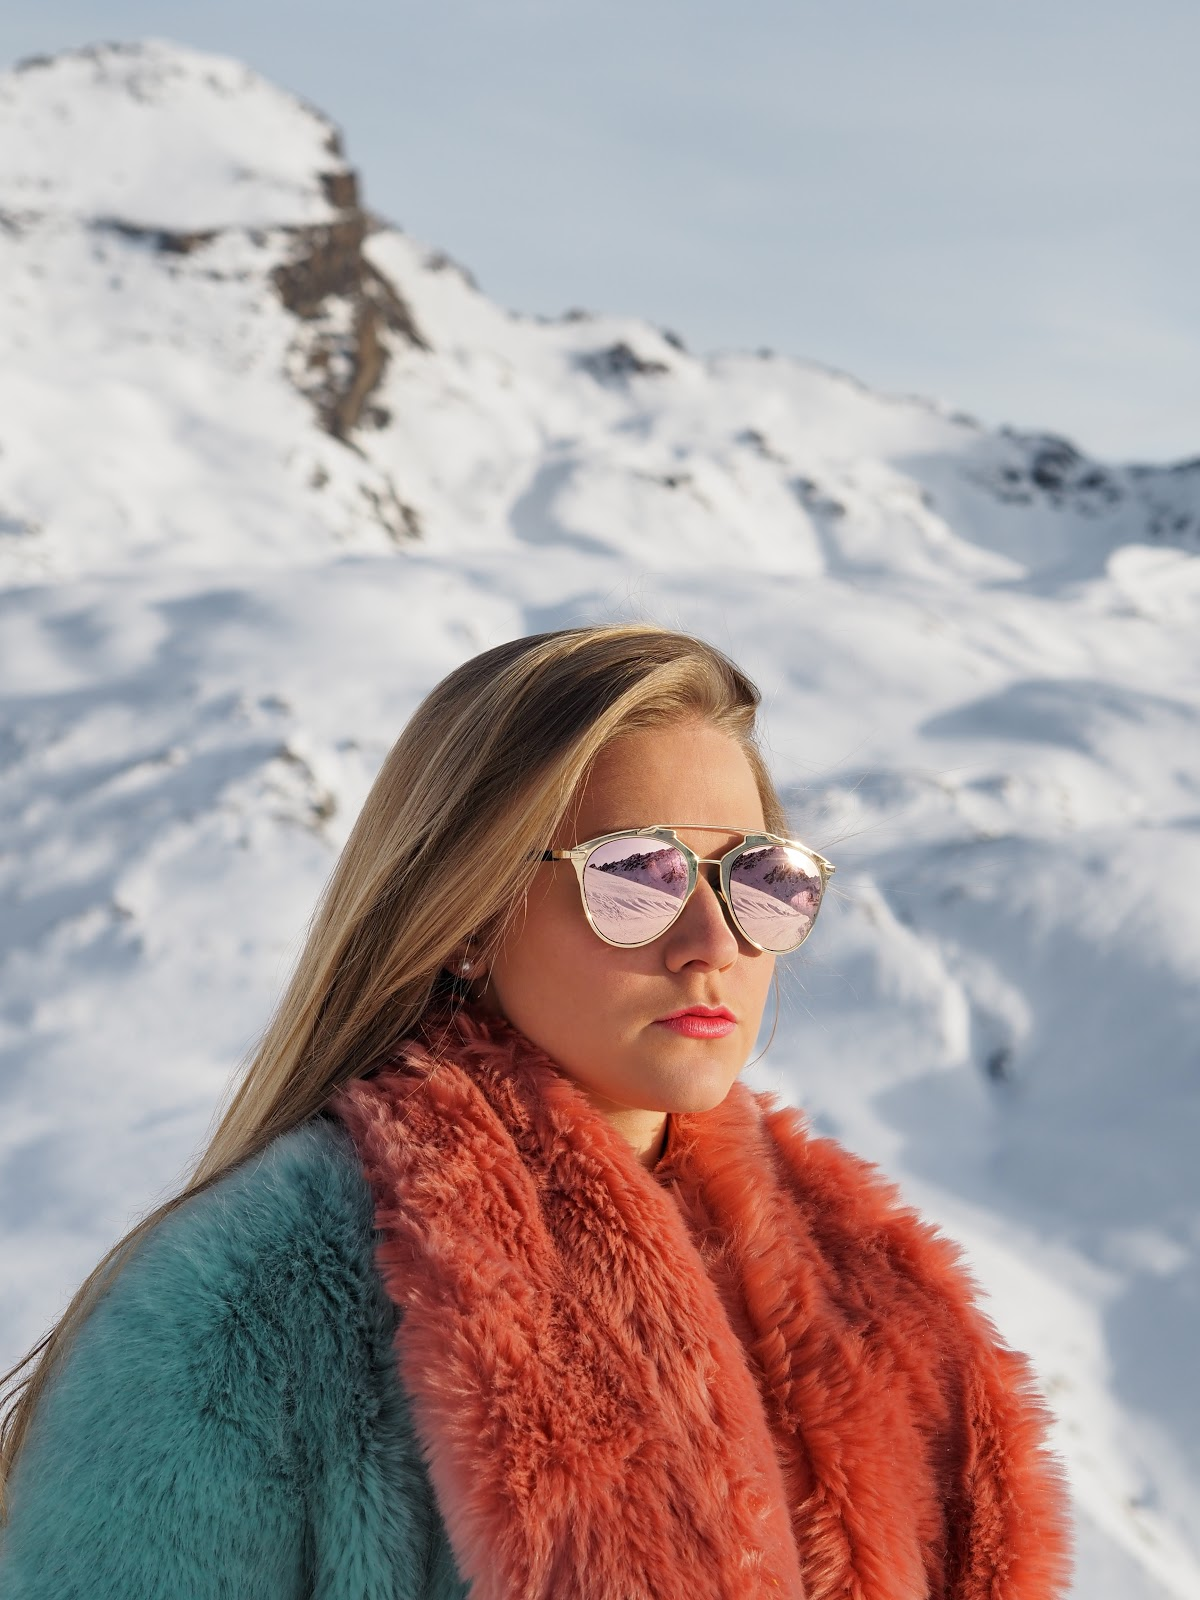 Blonde girl sitting in snowy mountains wearing blue and pink fur and sunglasses, Val d'Isere, France